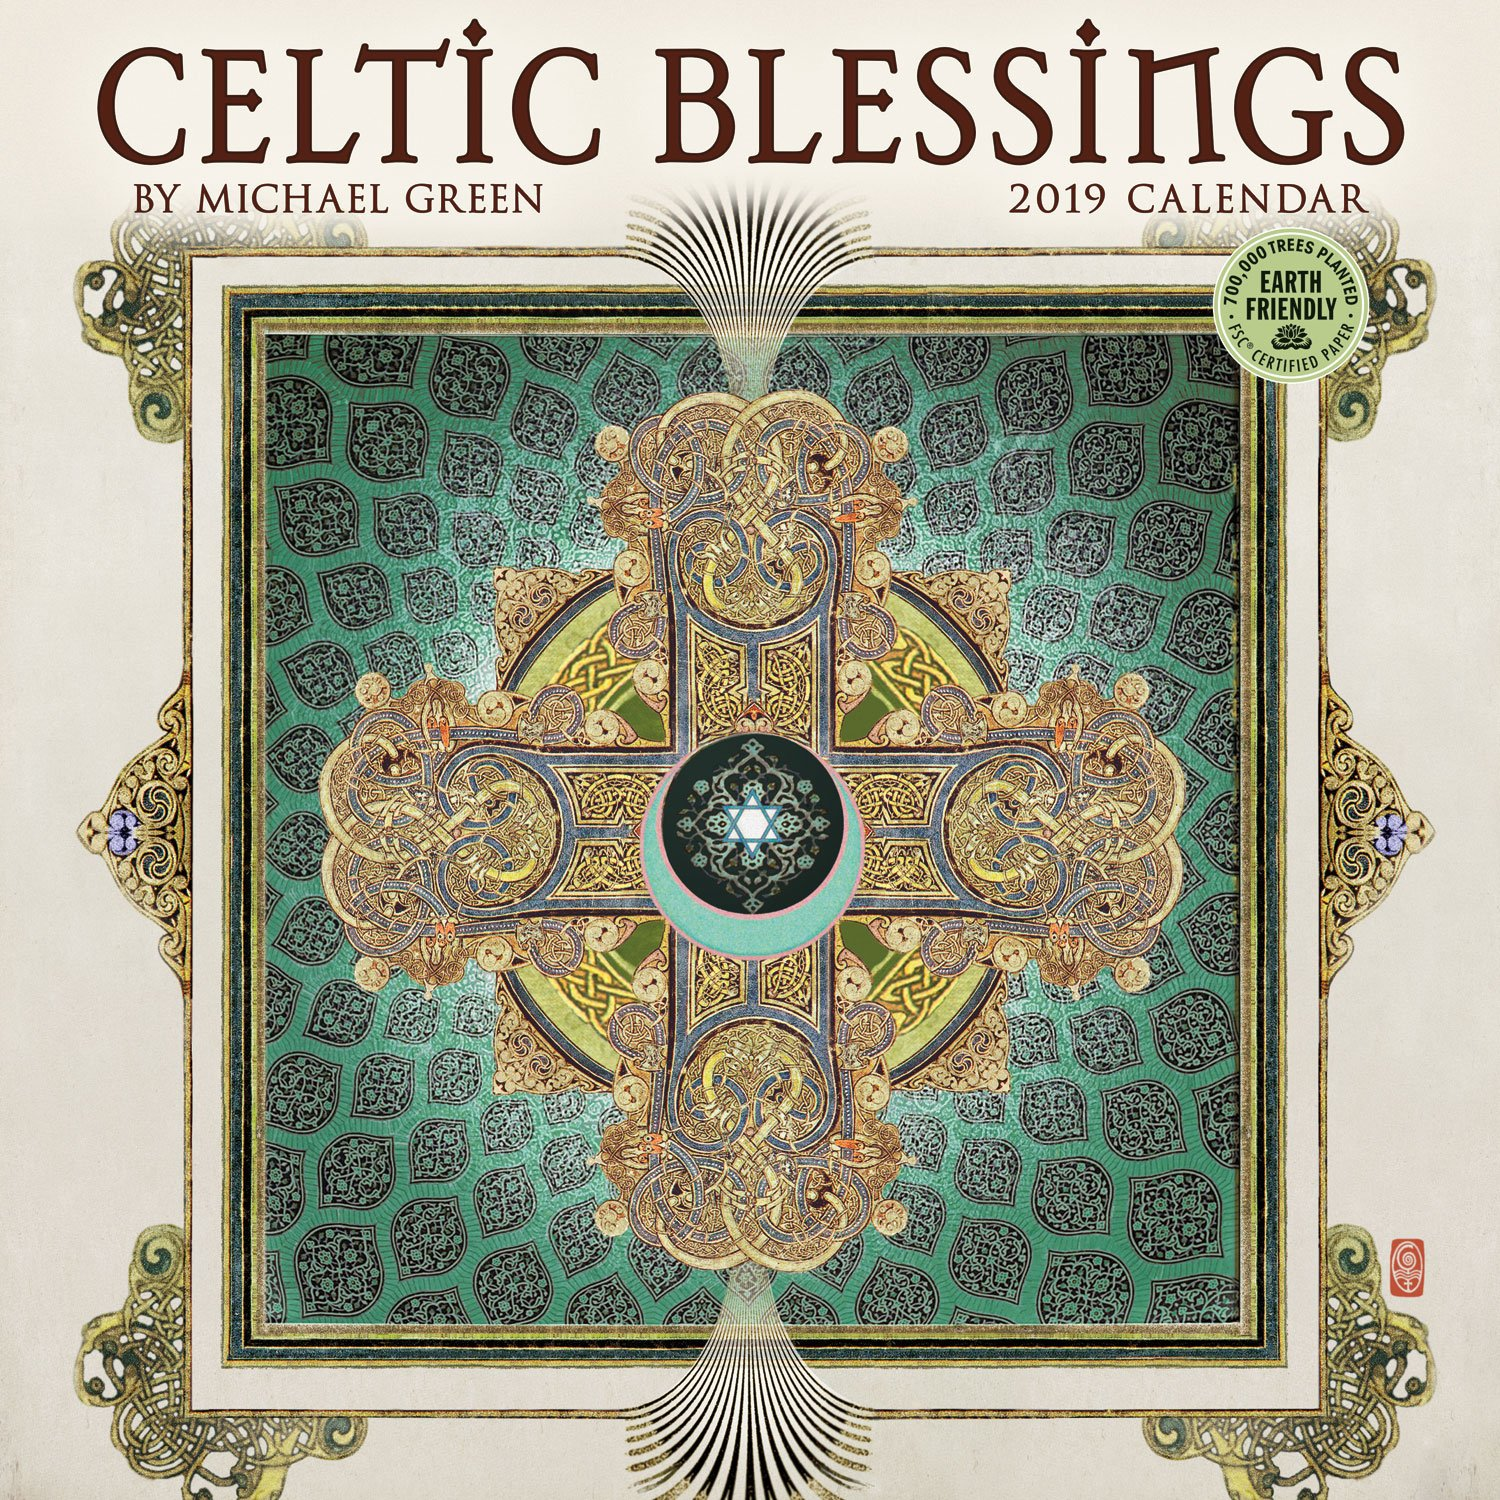 celtic blessings 2019 wall calendar illuminations by michael green